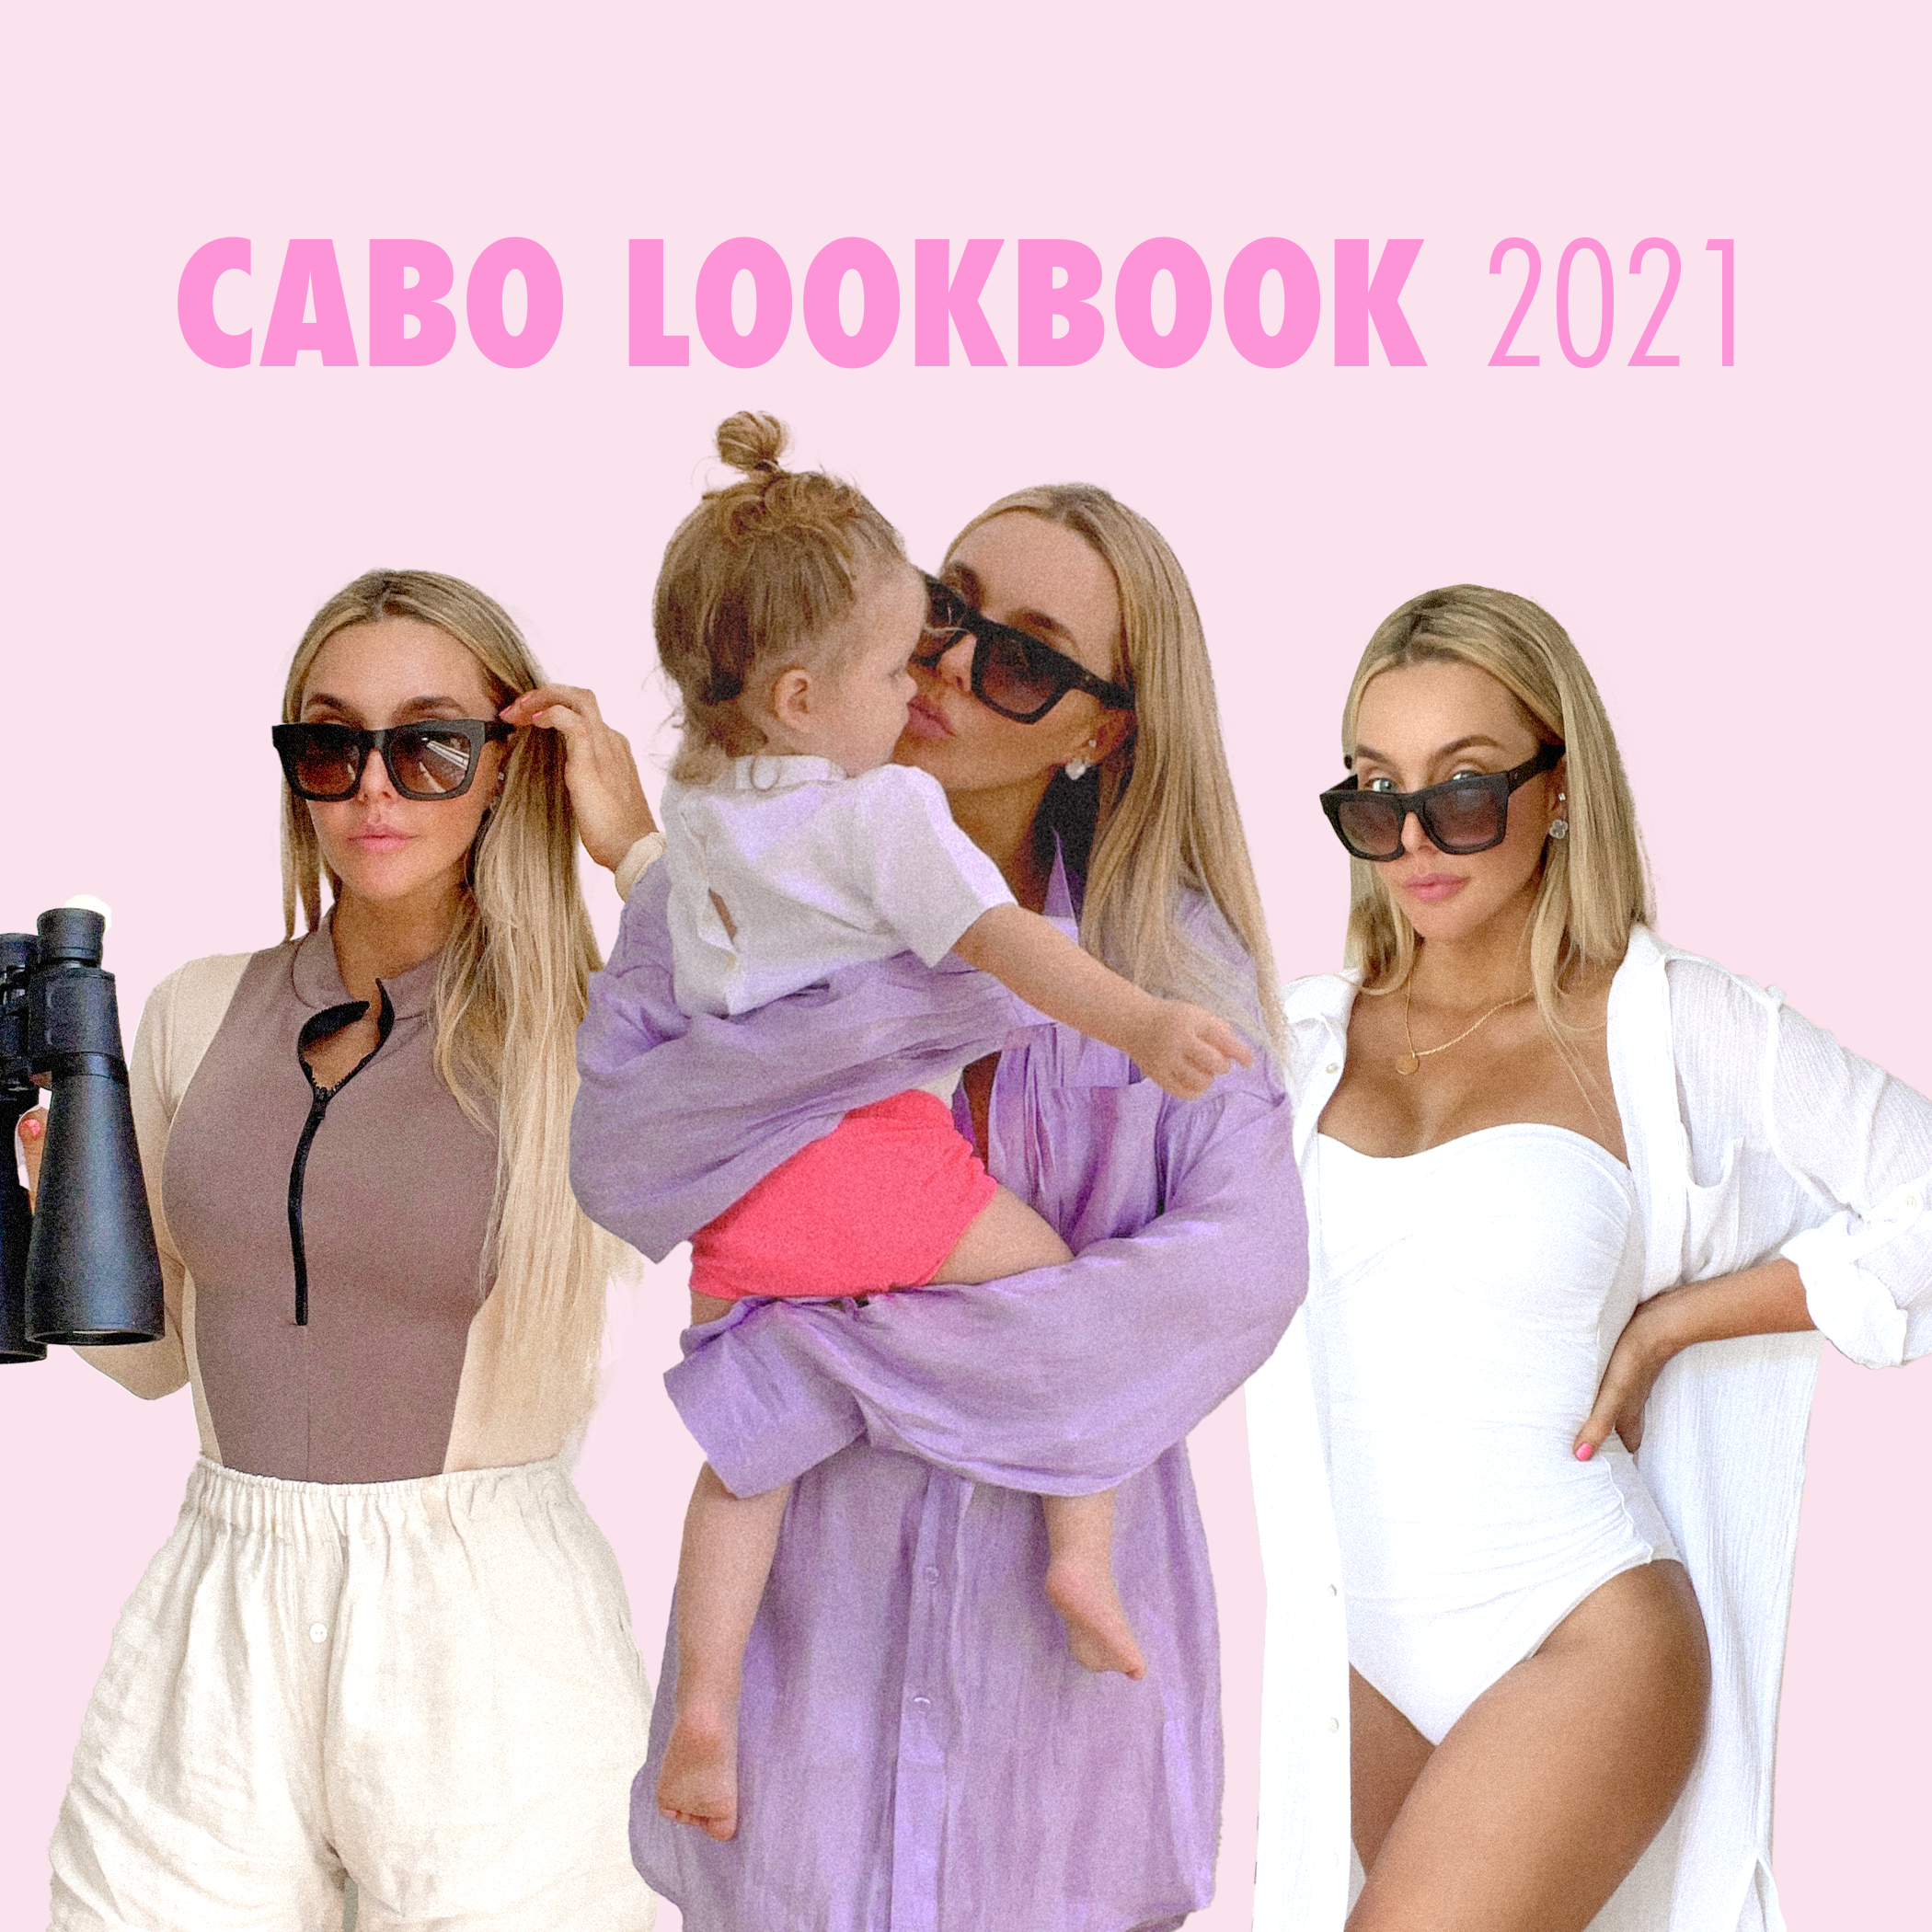 Cute Outfits For Cabo